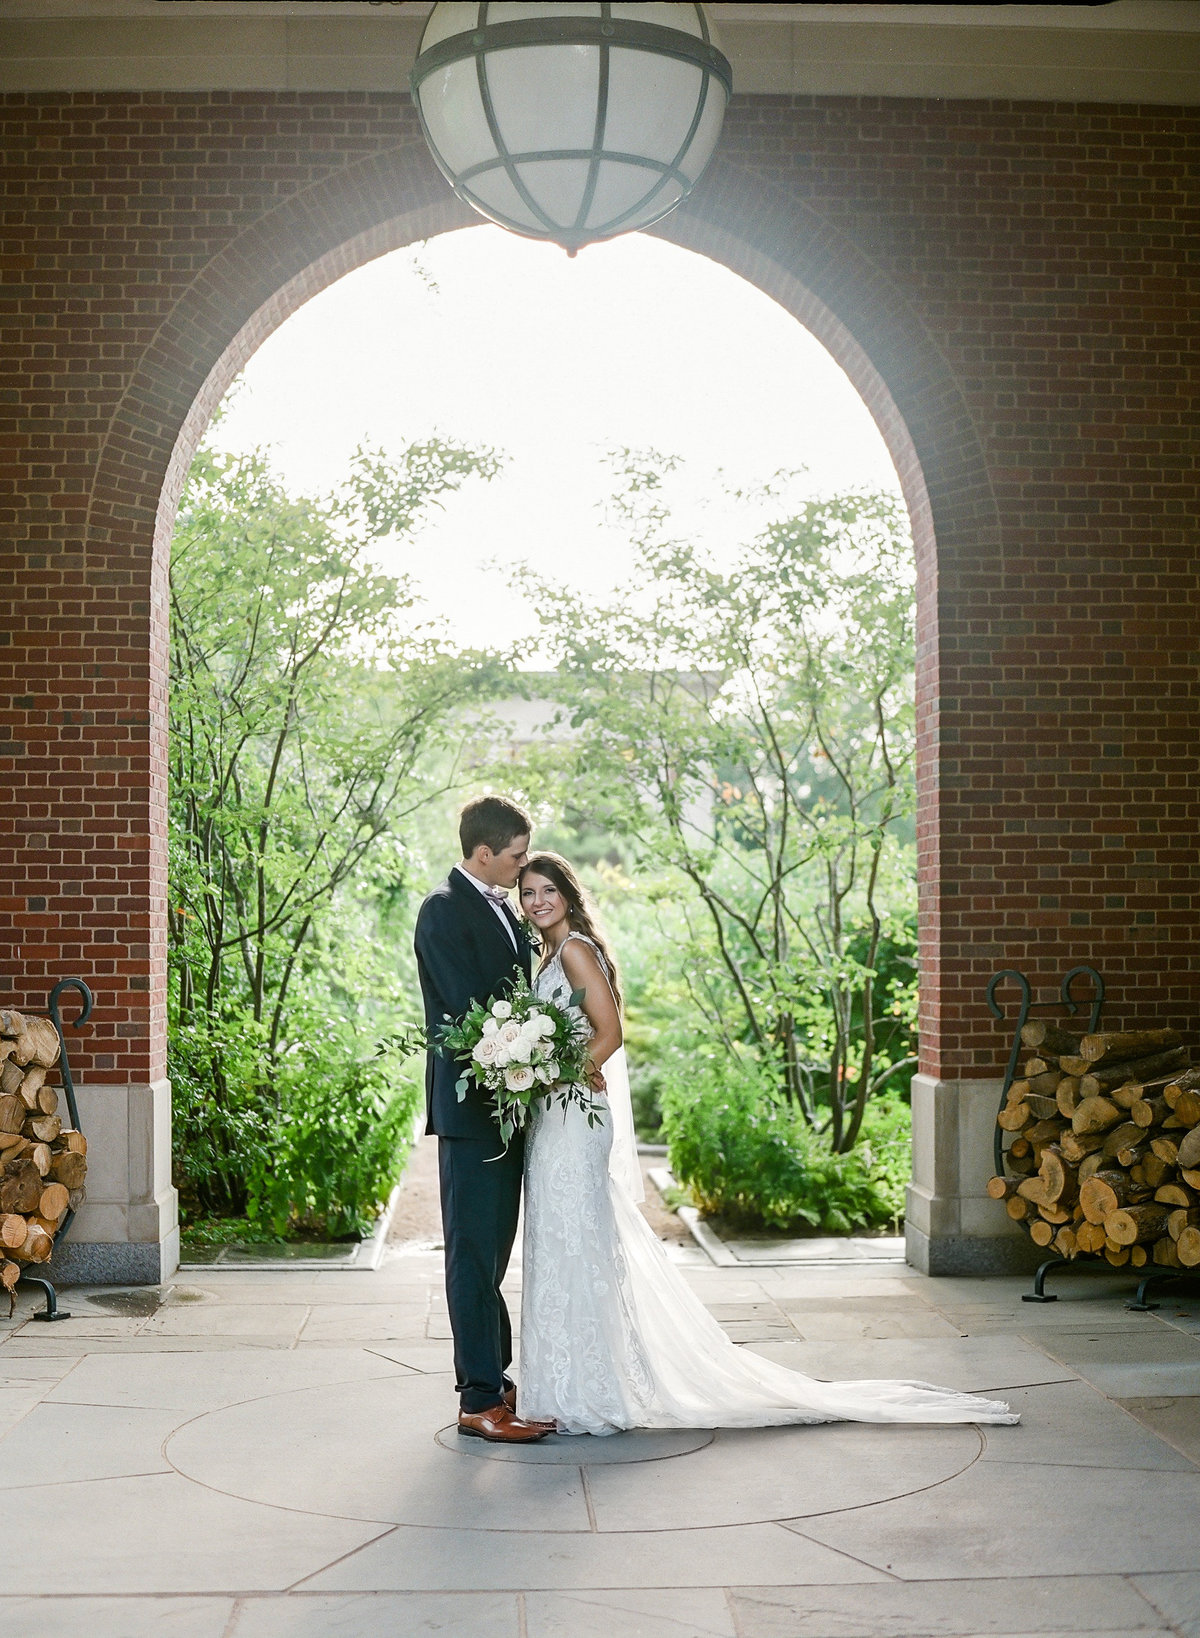 Jacqueline Anne Photography - Chrissy and David-131